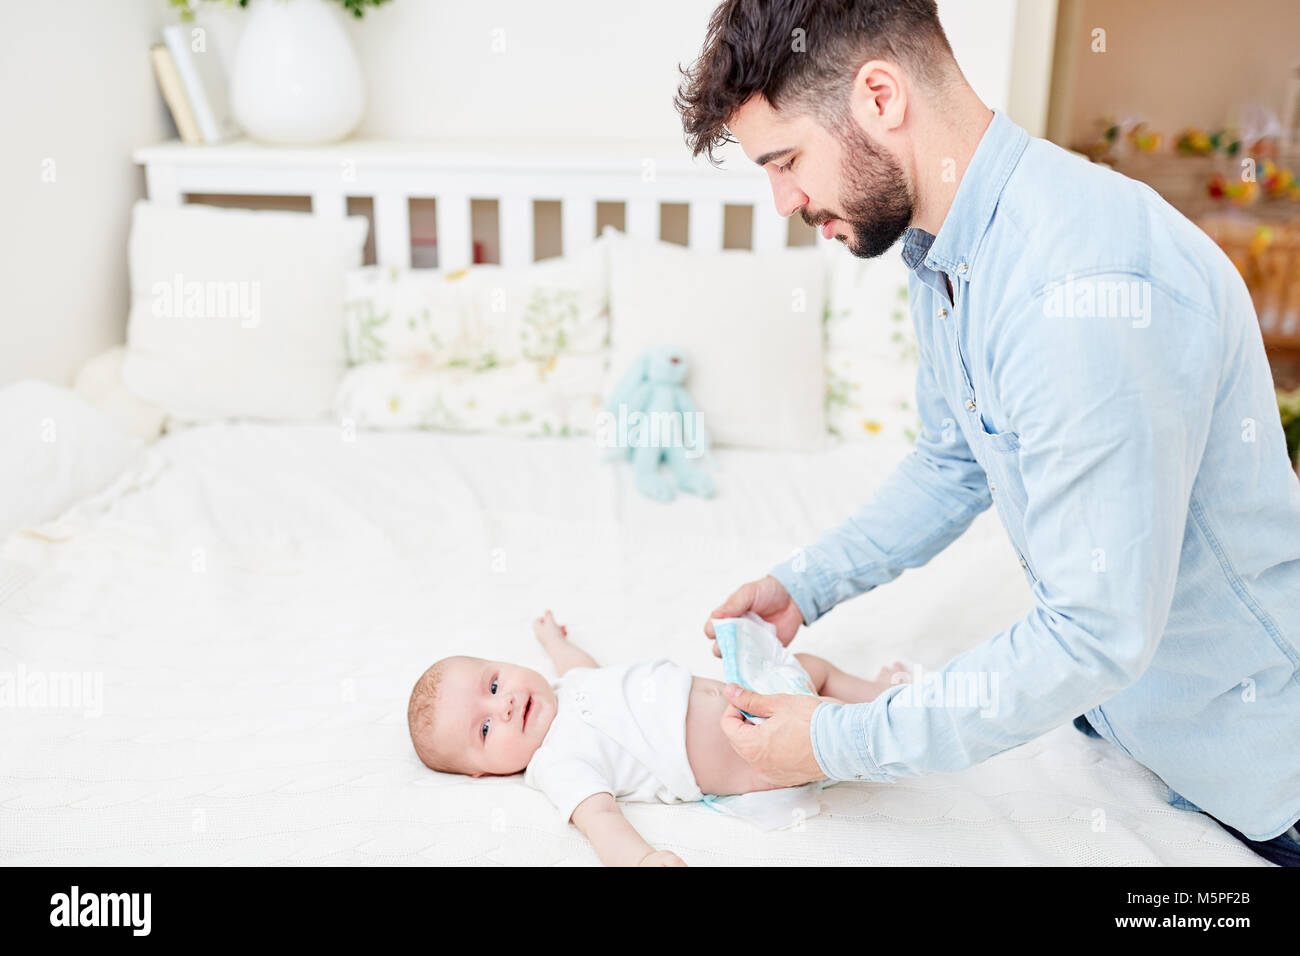 Young man as father in parental leave changes the diapers of his baby - Stock Image